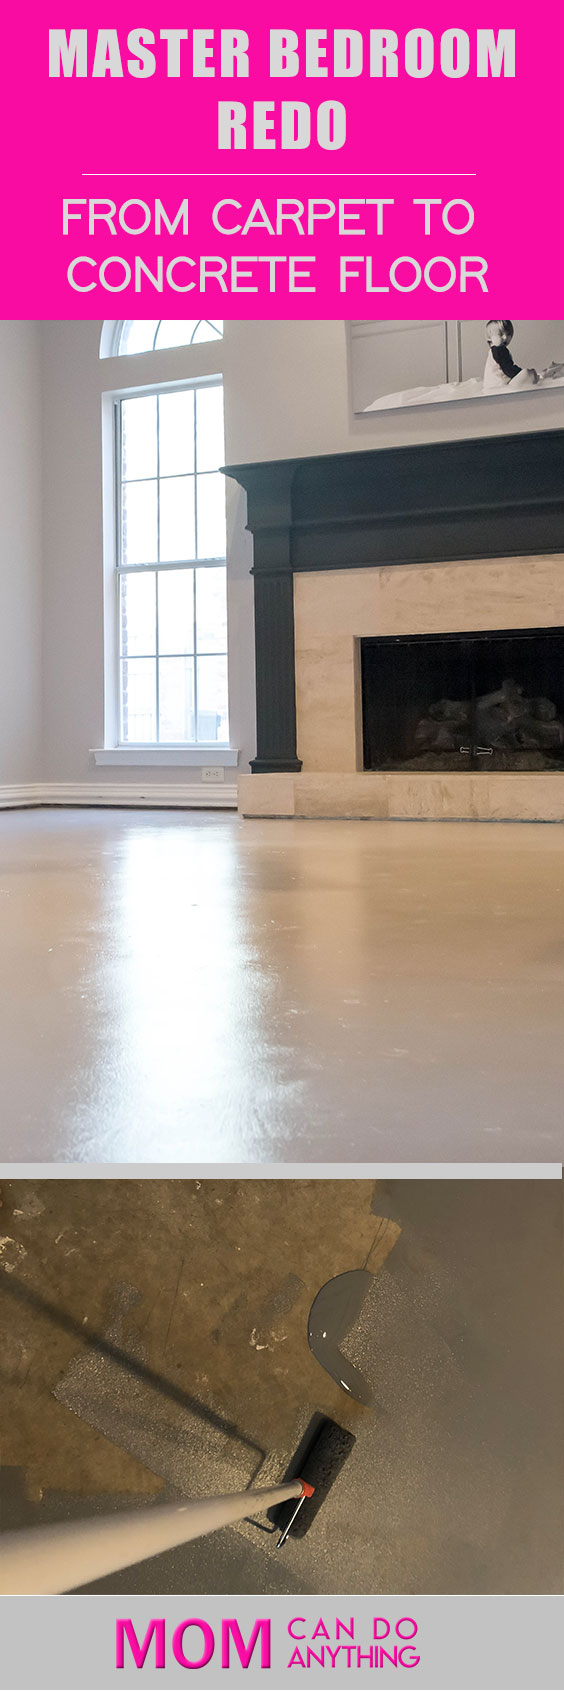 Master-Bedroom-Redo---Concrete-floor